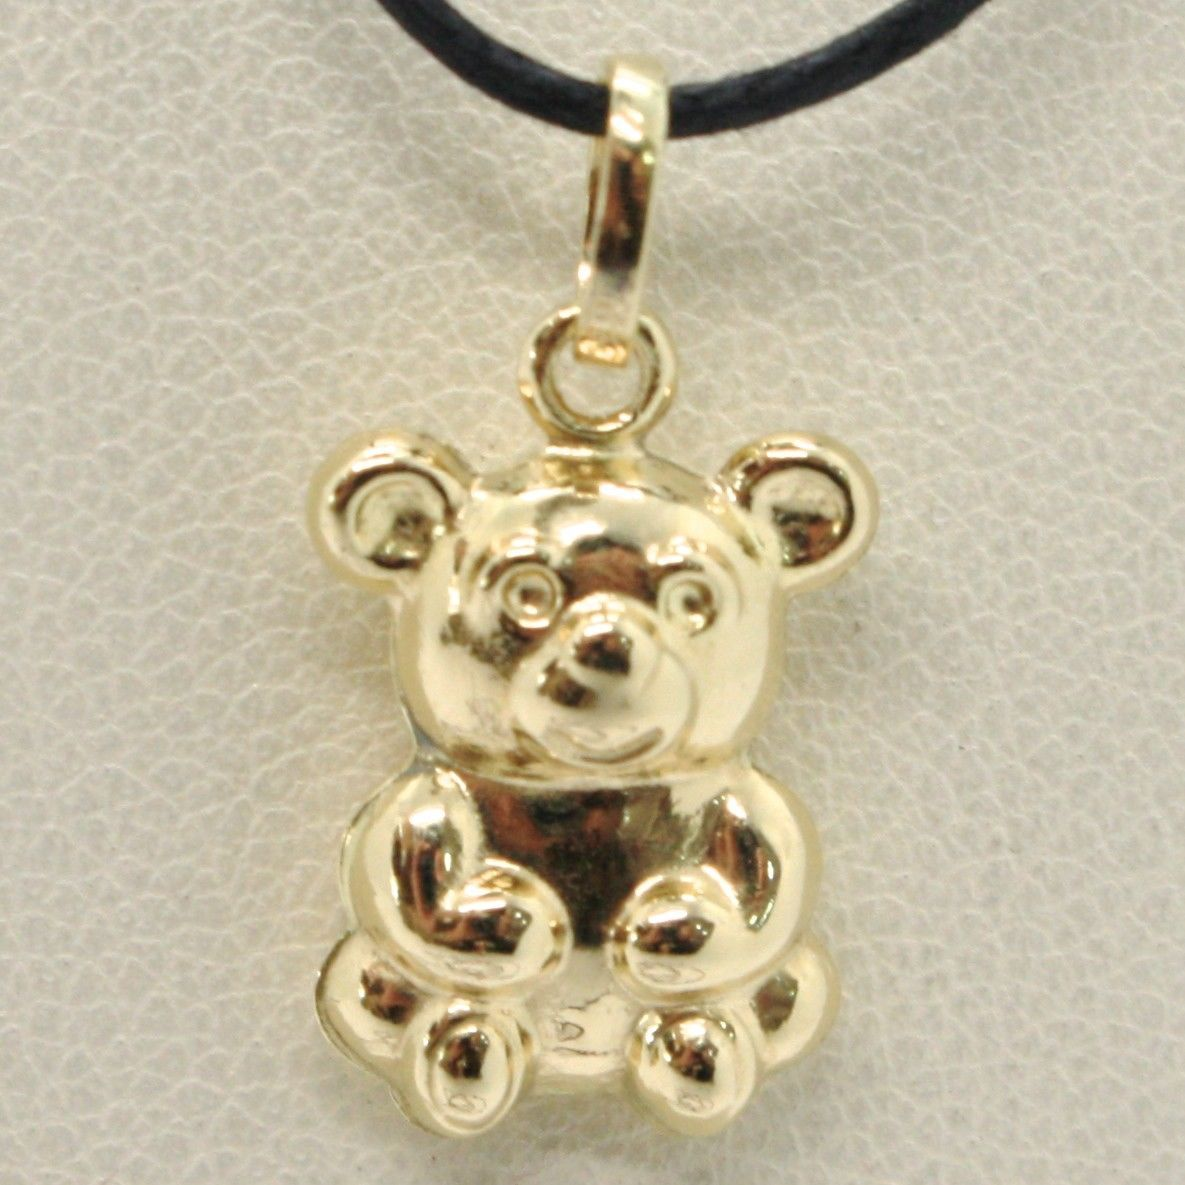 18K YELLOW GOLD ROUNDED BEAR TEDDY BEAR PENDANT CHARM 20 MM SMOOTH MADE IN ITALY